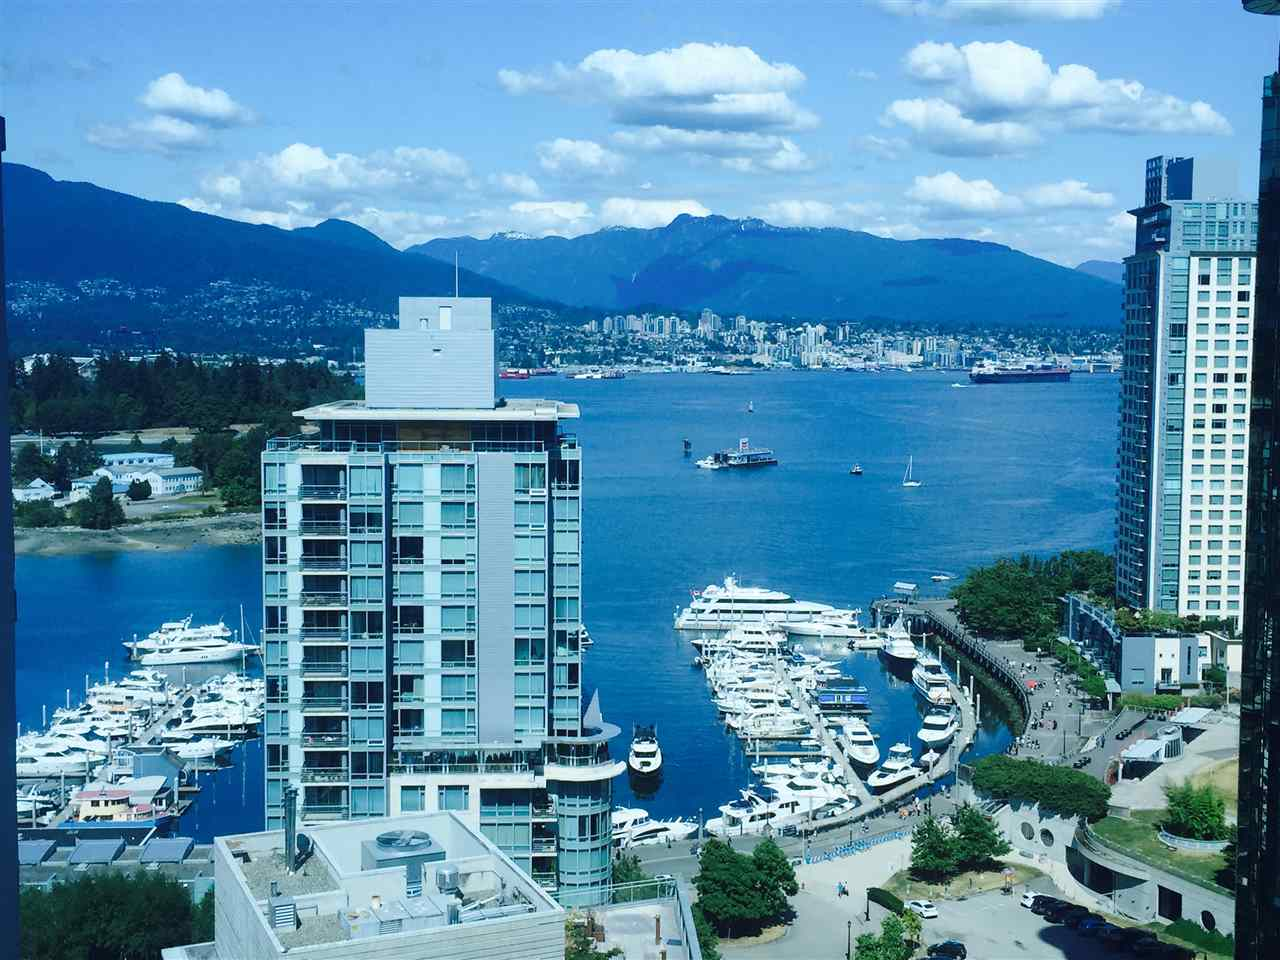 Condo Apartment at 1704 1415 W GEORGIA STREET, Unit 1704, Vancouver West, British Columbia. Image 1